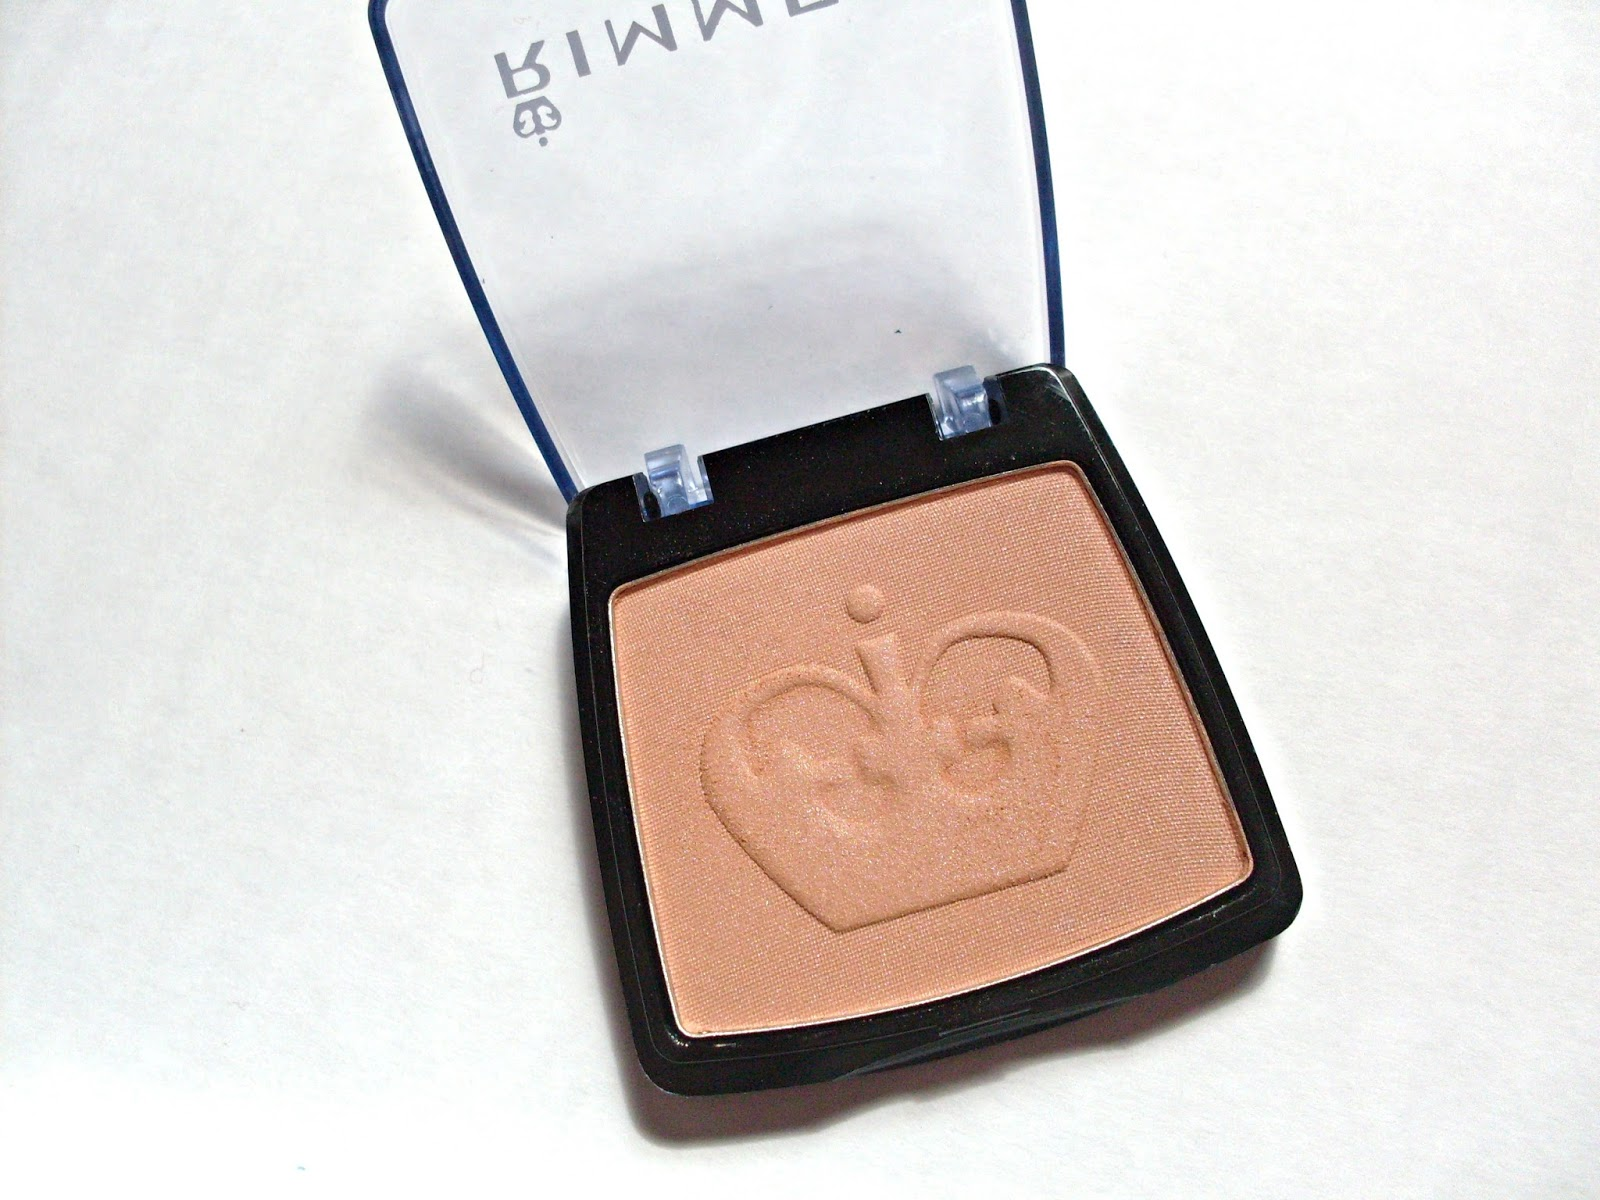 Rimmel Powder blush in 041 Bronze